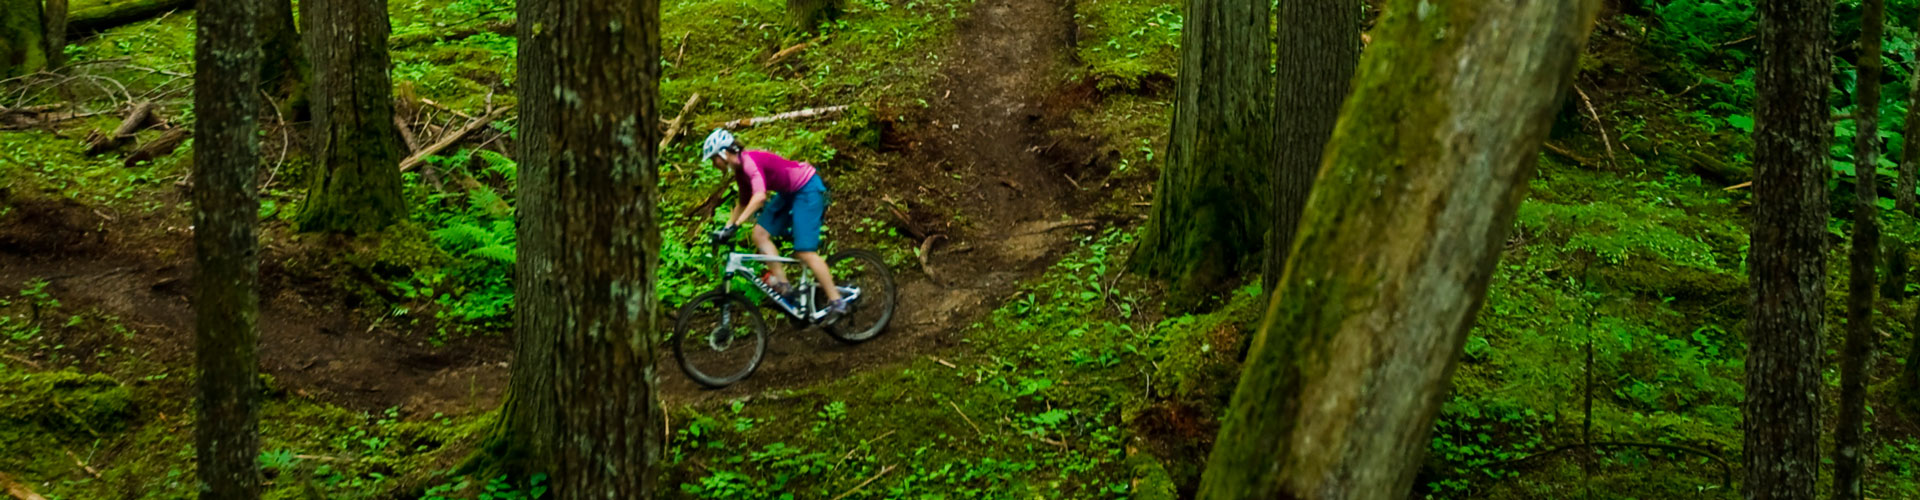 Mountain biker riding singletrack in British Columbia rainforest